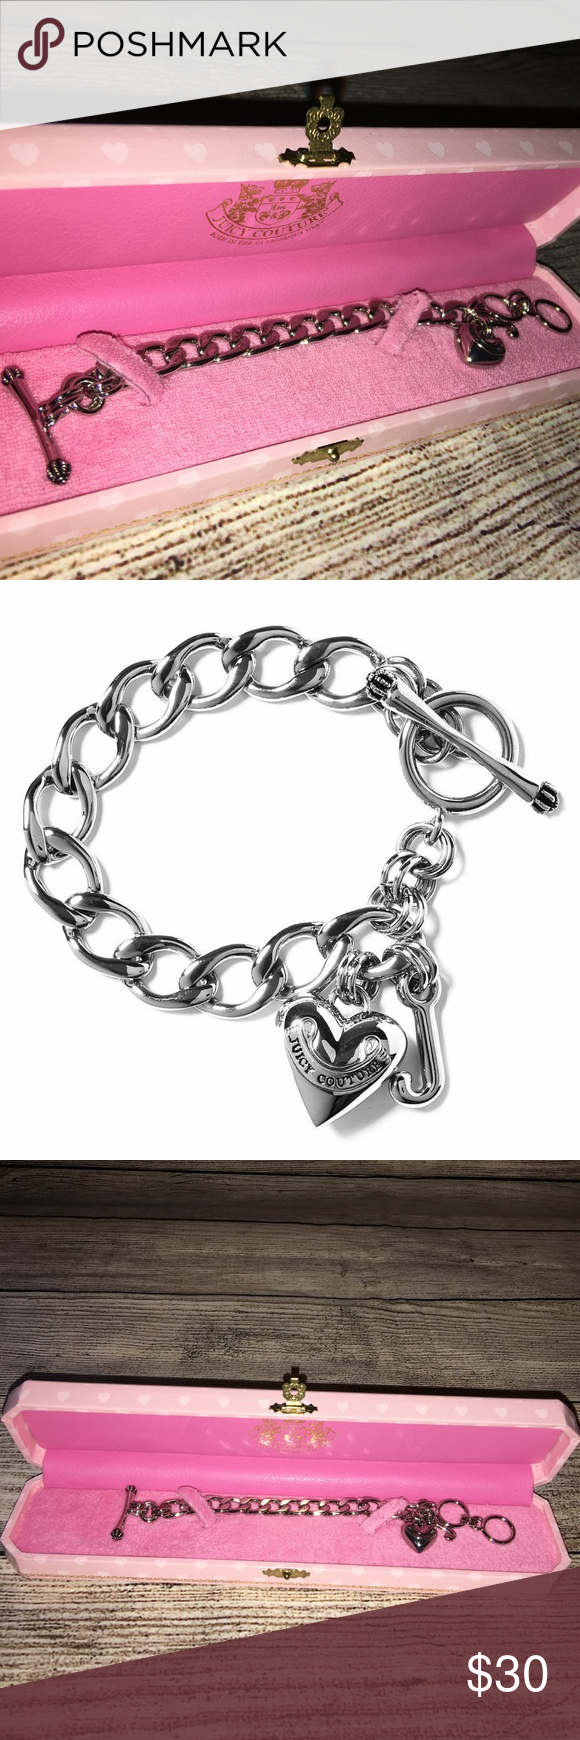 bbb82ae229c3 JUICY COUTURE Silver Mini Starter Charm Bracelet Darling mini starter charm  bracelet for your young lady